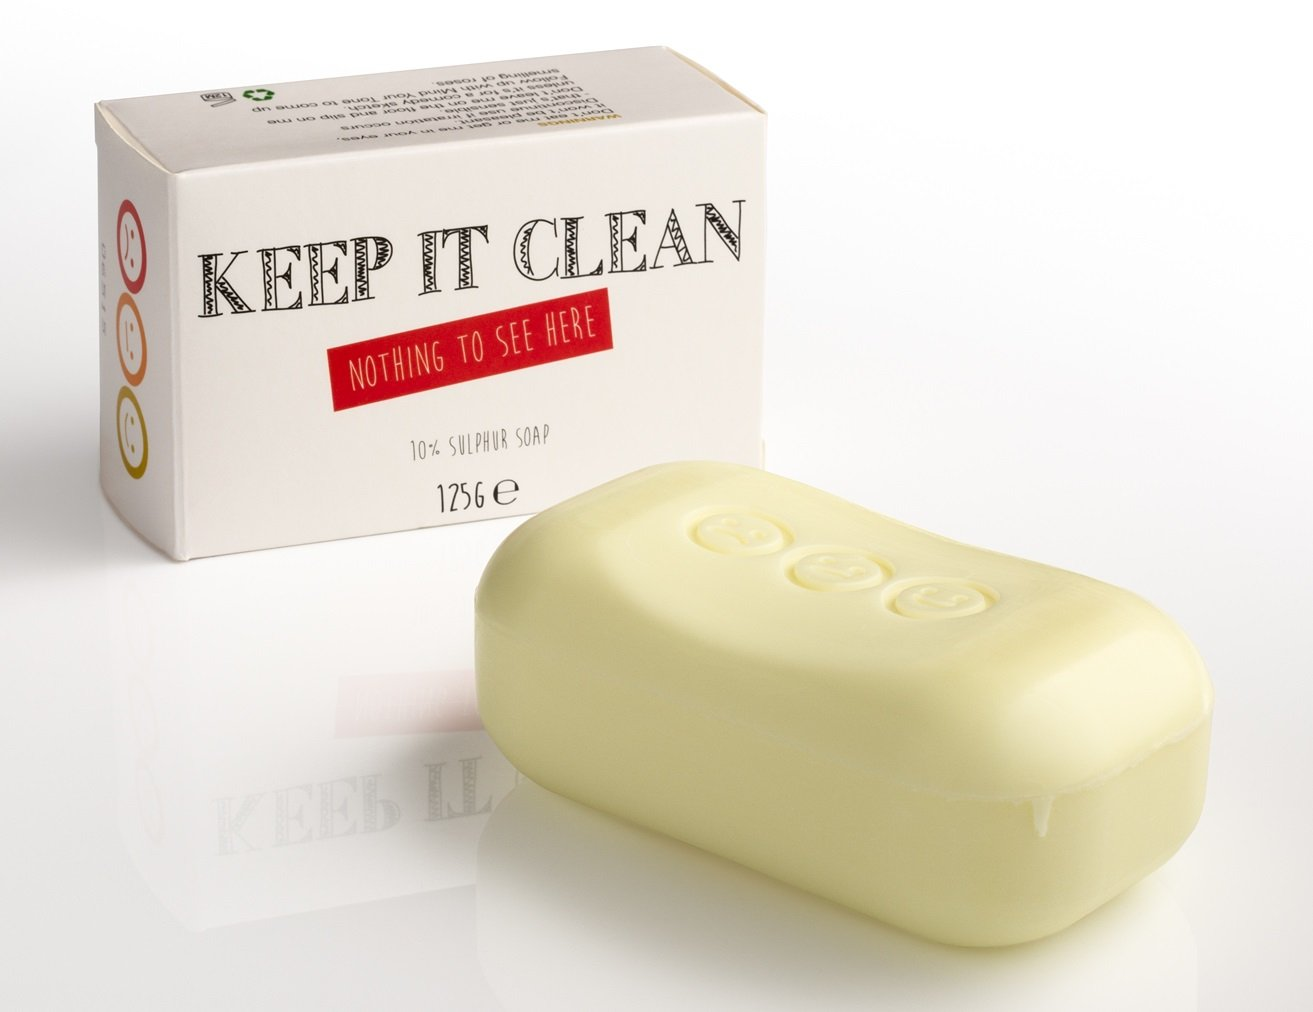 Keep it Clean - 10% Sulphur Soap - whytheface HealthCentre